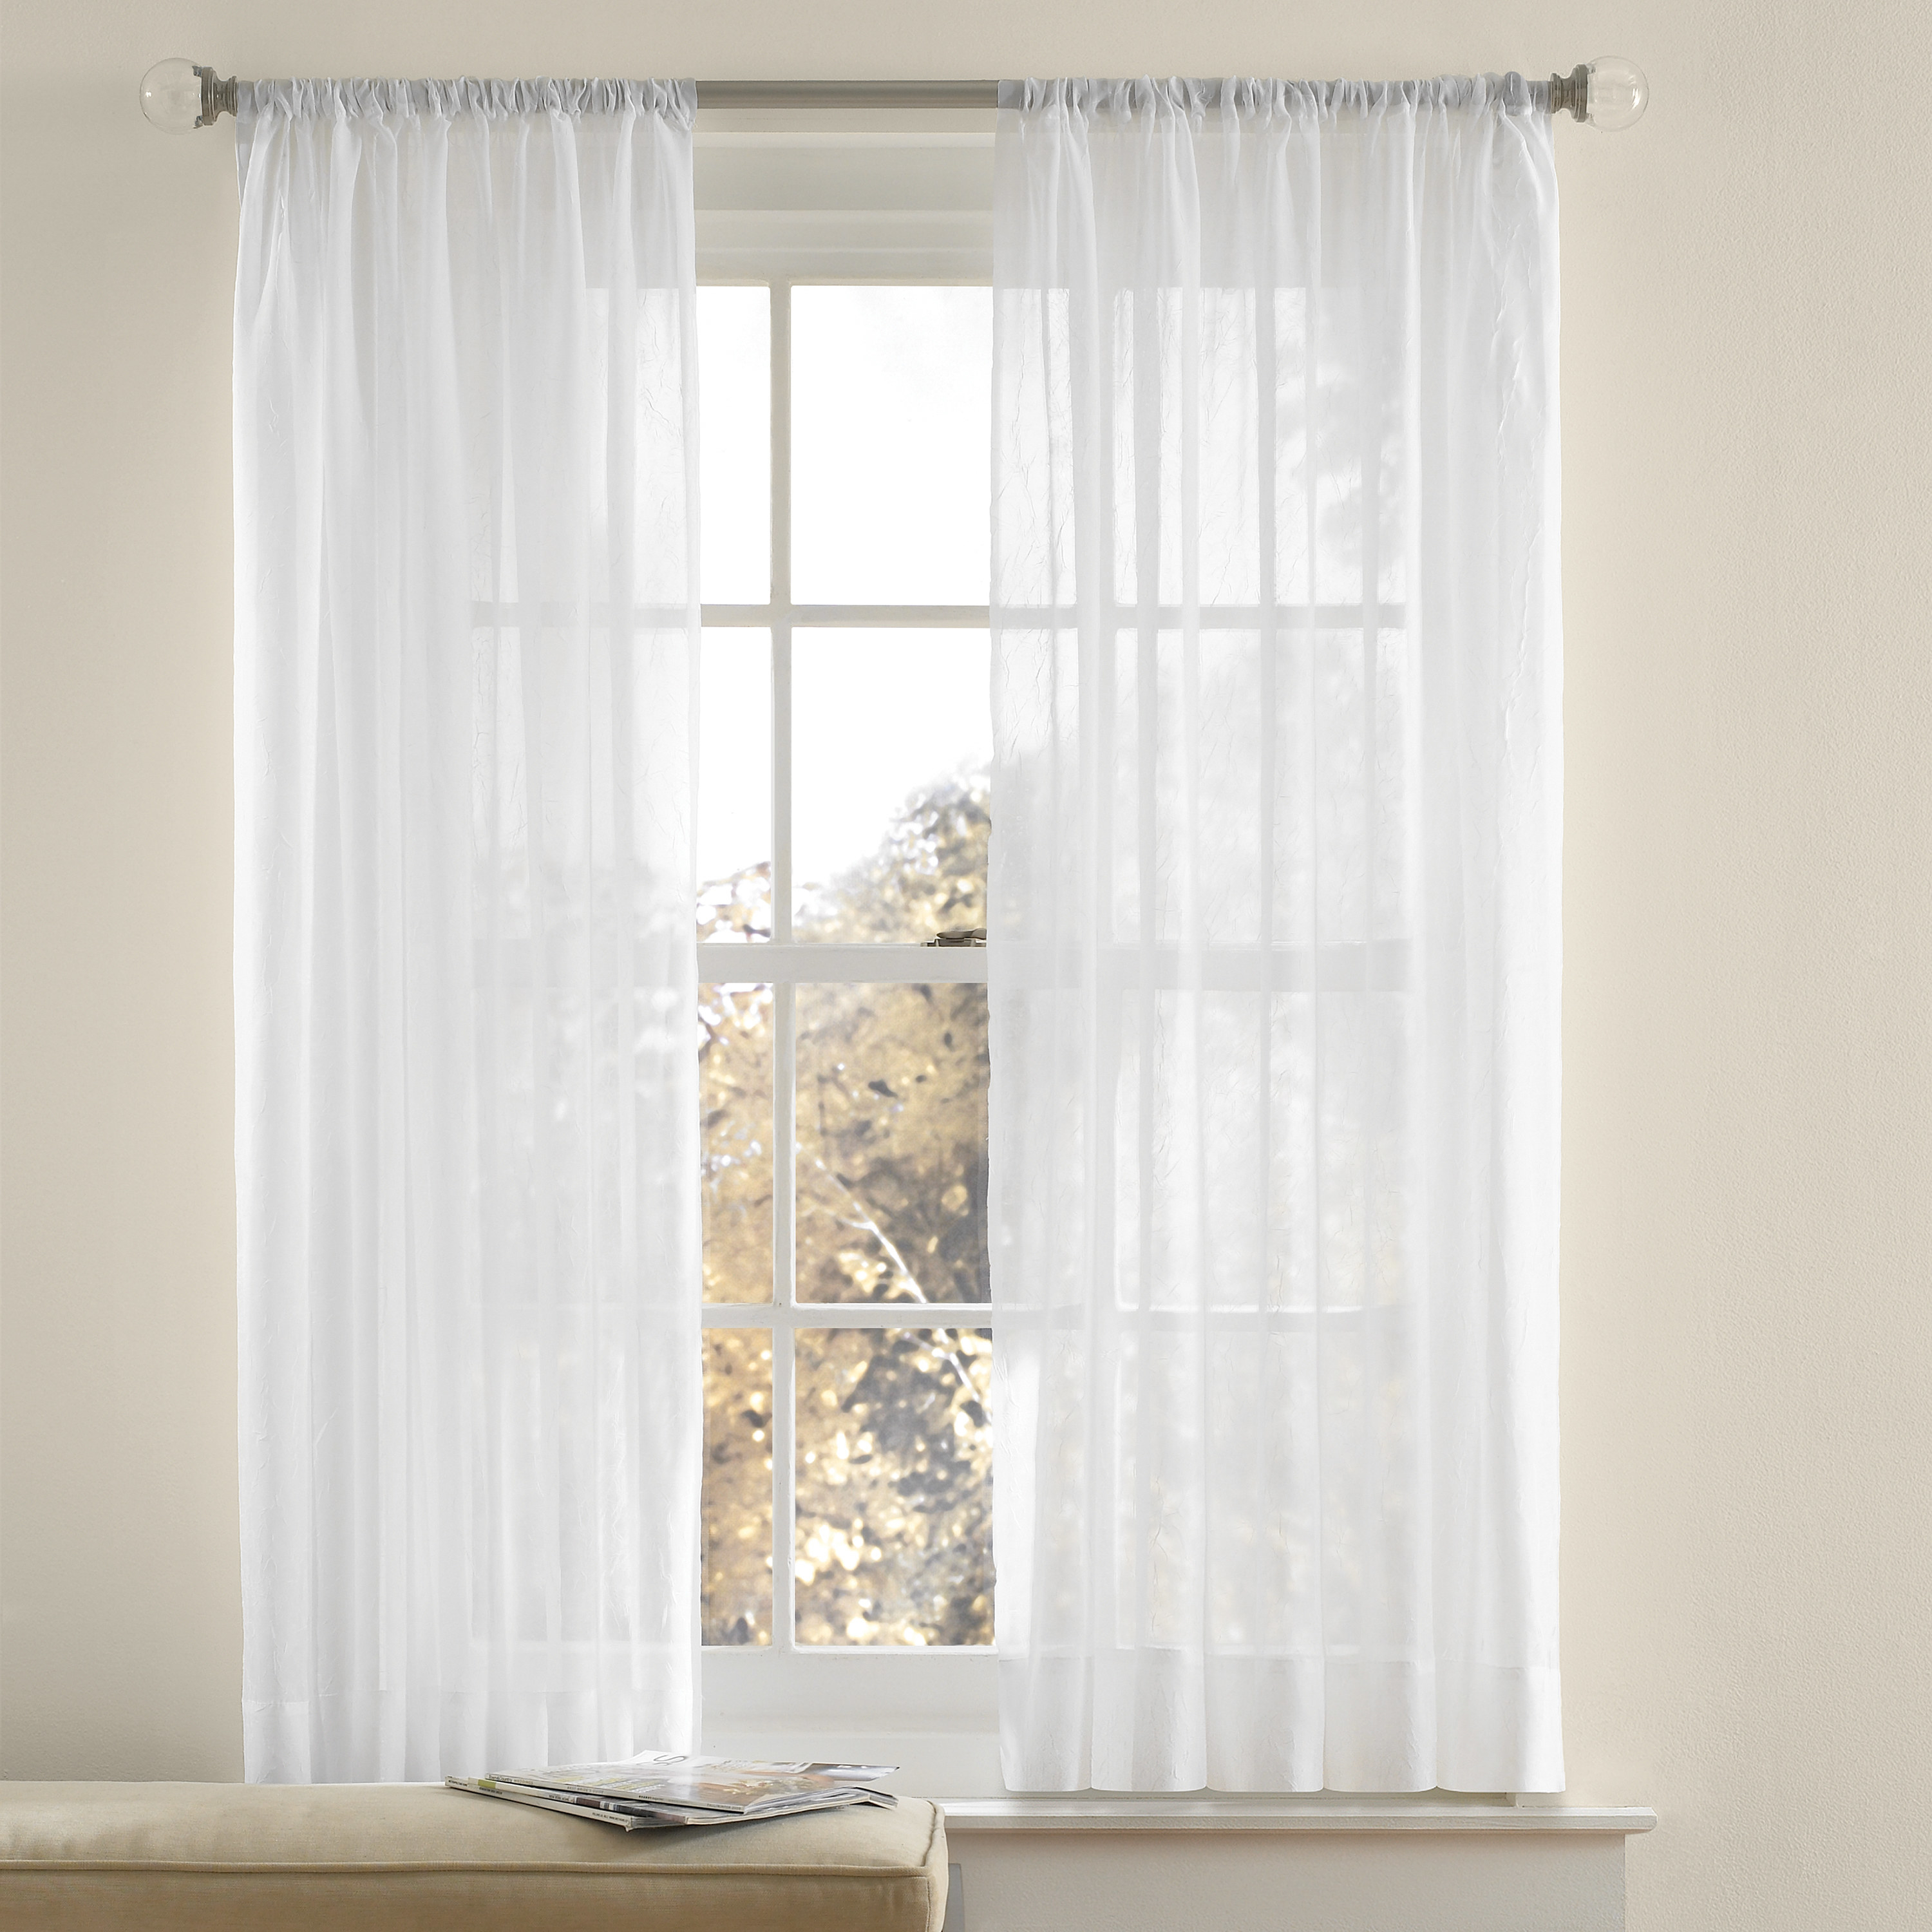 Crushed voile white long hanging curtains